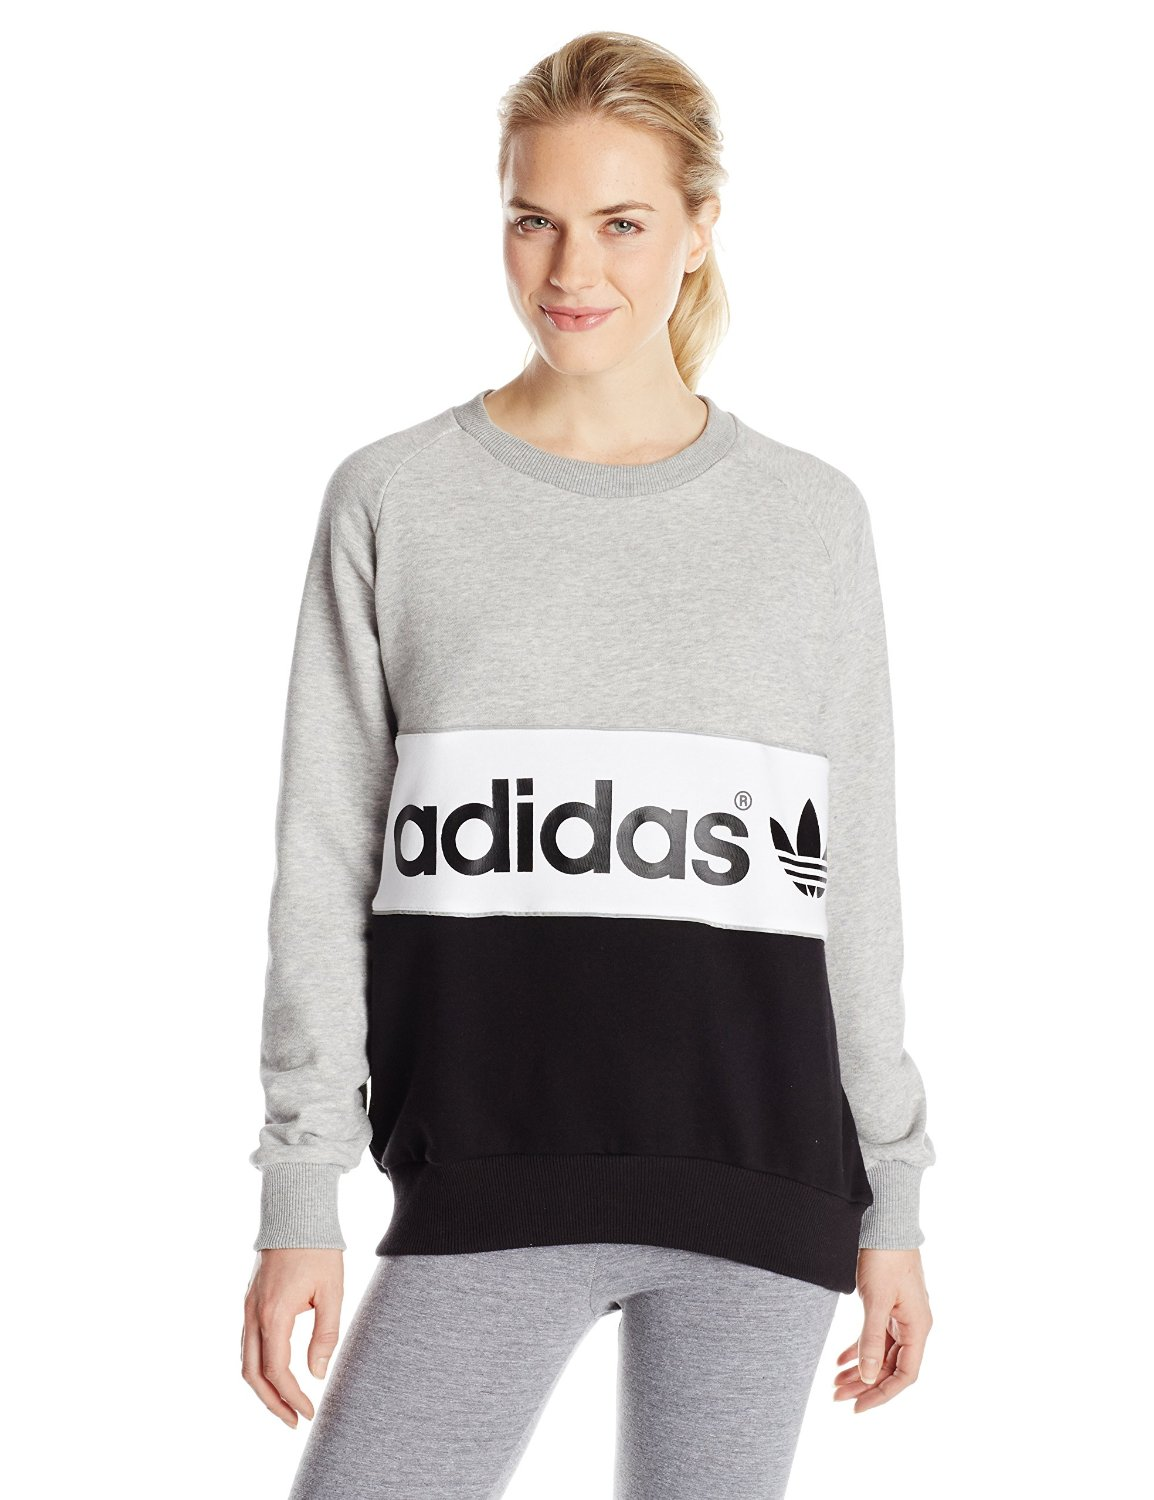 adidas sweatshirt originals womens